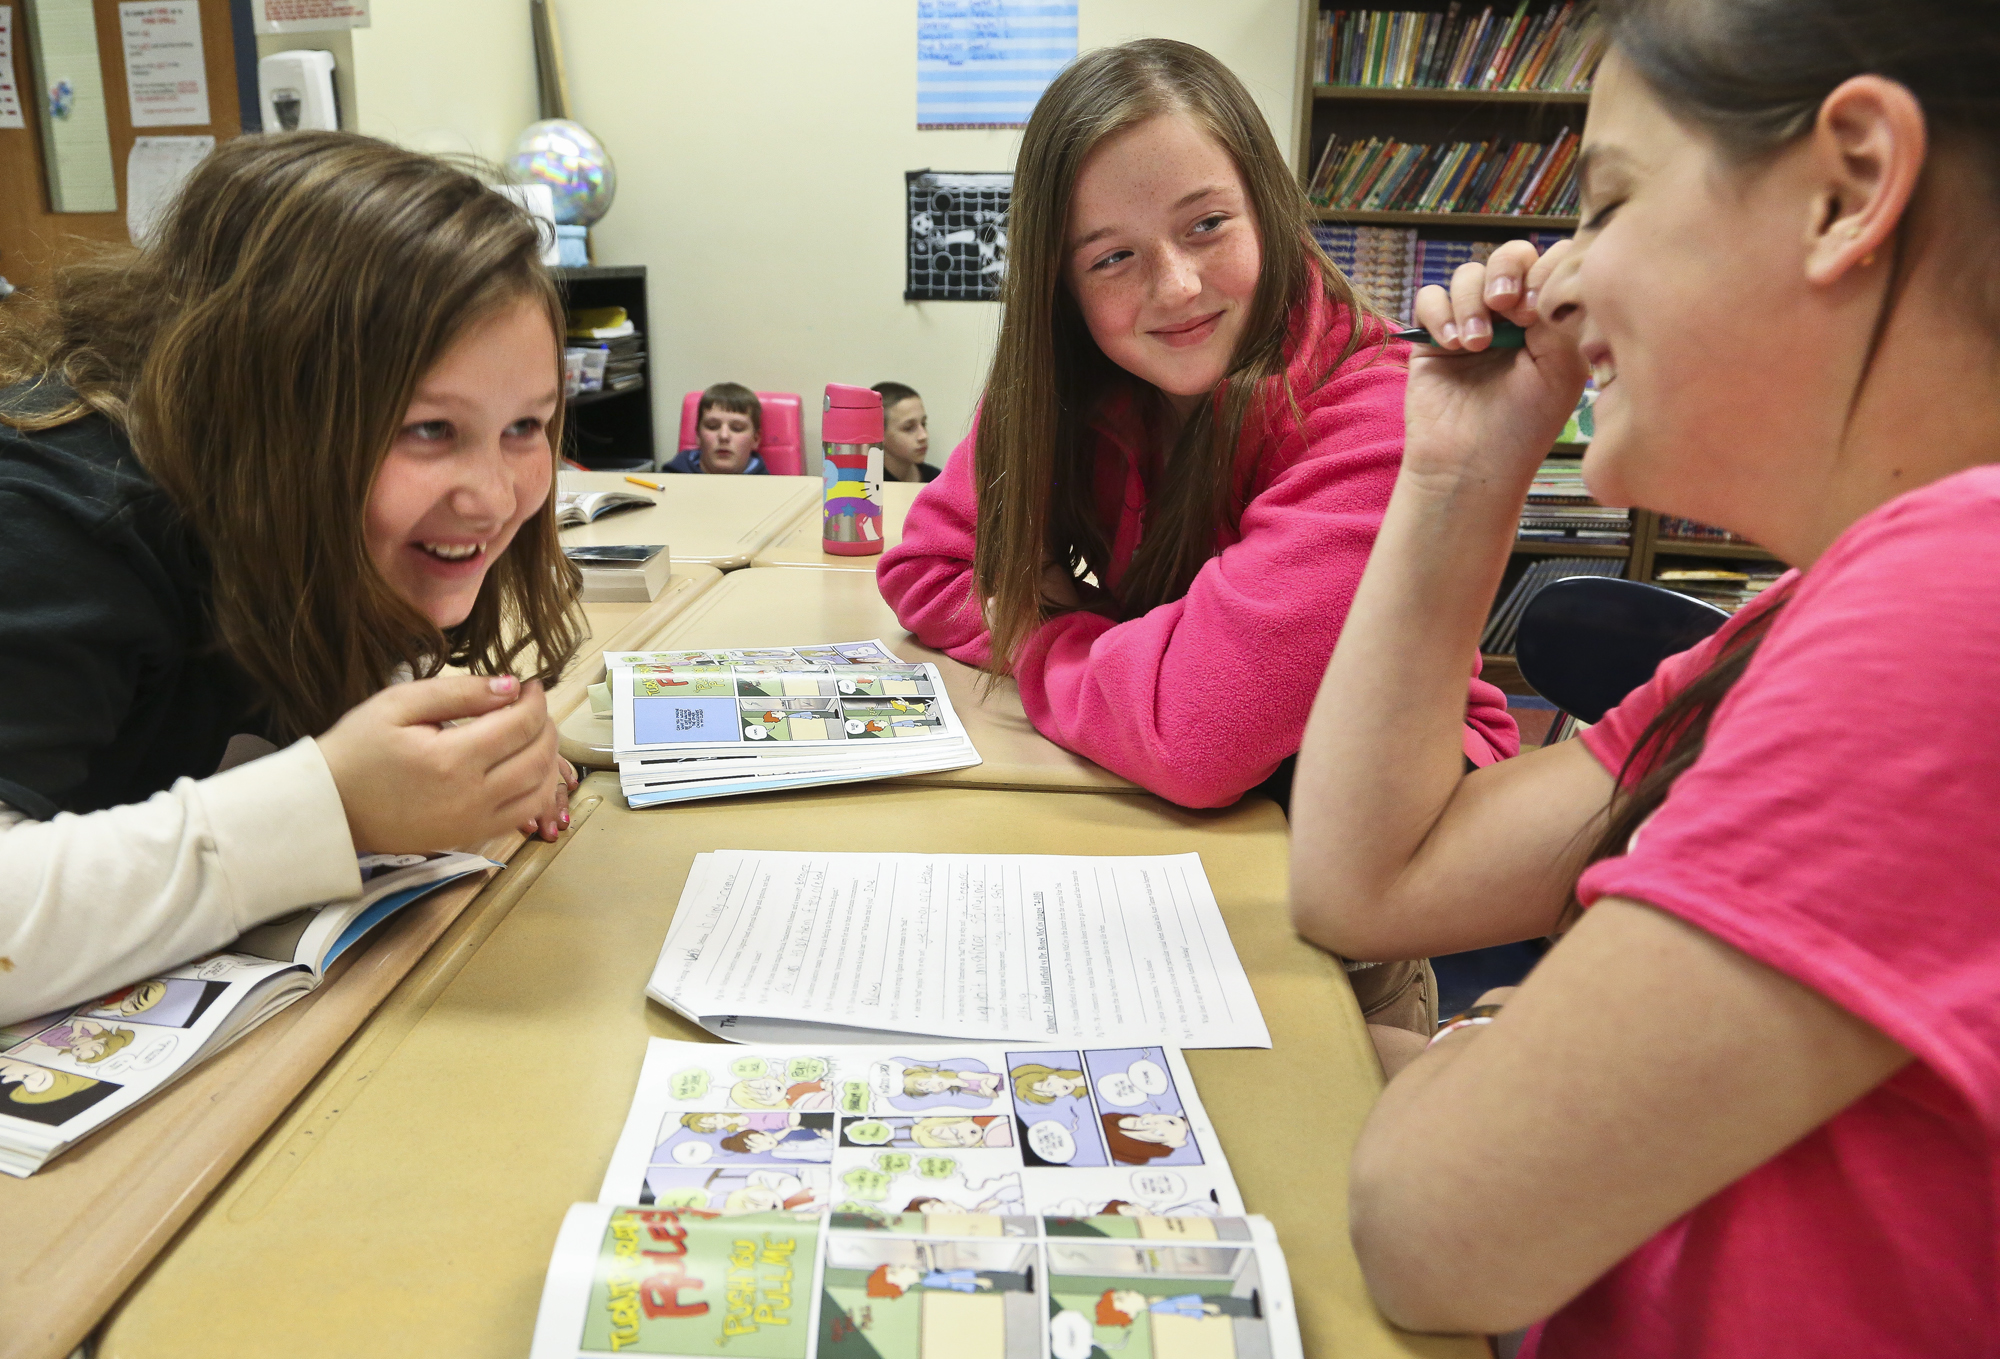 """Fifth grade students from left; Alissa Smith, 11, Anna Clemens, 11 and Lacie Kanely, 10 reviews the graphic novel """"Amelia Rules"""" in Ashley Ayres, communications arts teacher's classroom at South Eastern Middle School West, Fawn Township Monday, April, 28, 2014. Ayers and other teachers uses graphic novels is one of the teaching tools to get kids to read. Photo by Sonya Paclob"""